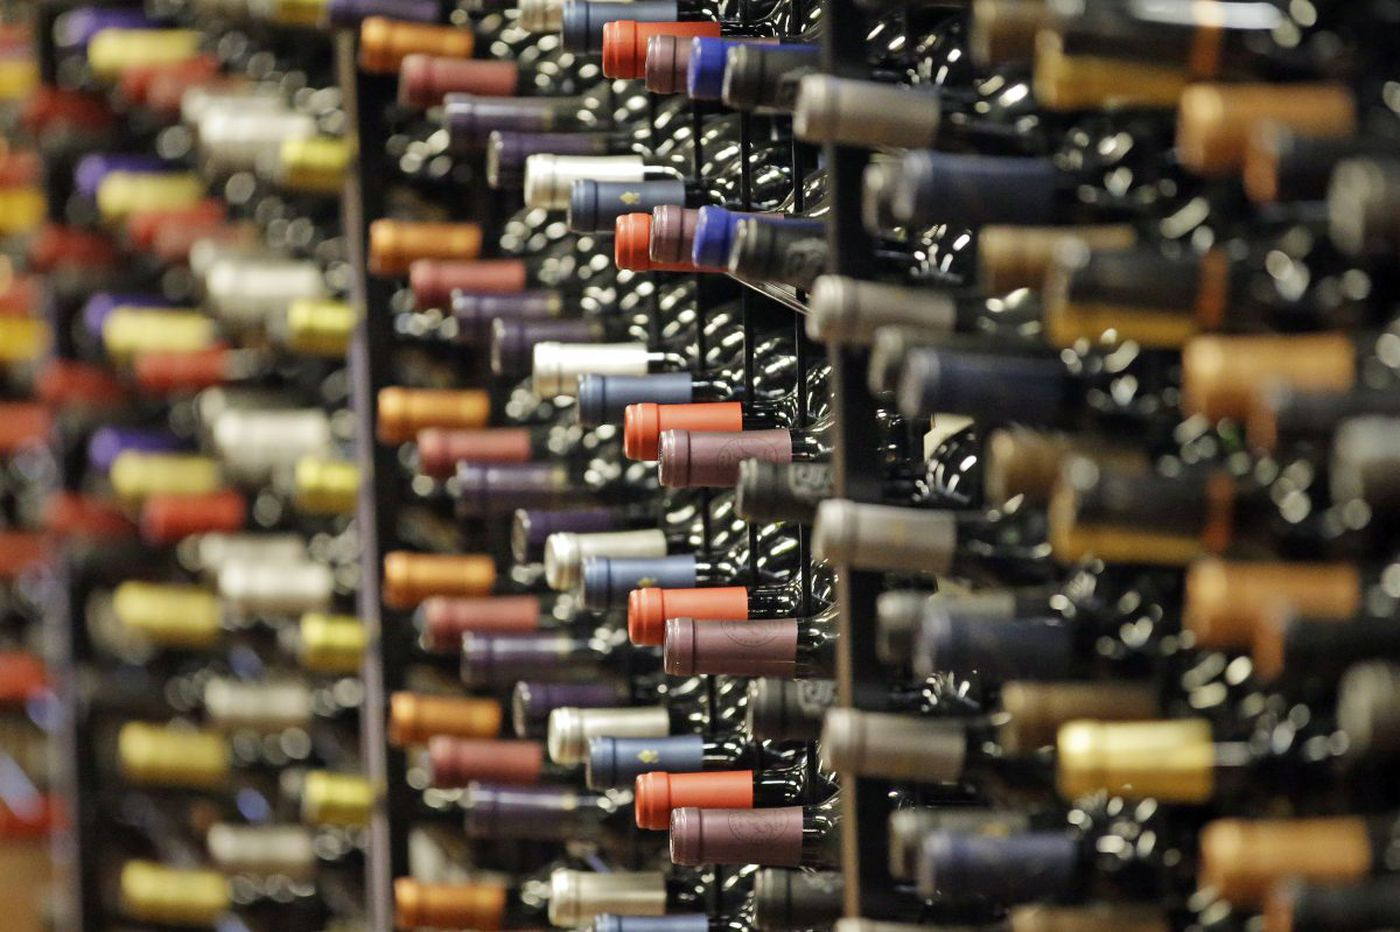 New special wine ordering system for Pa. restaurants starts